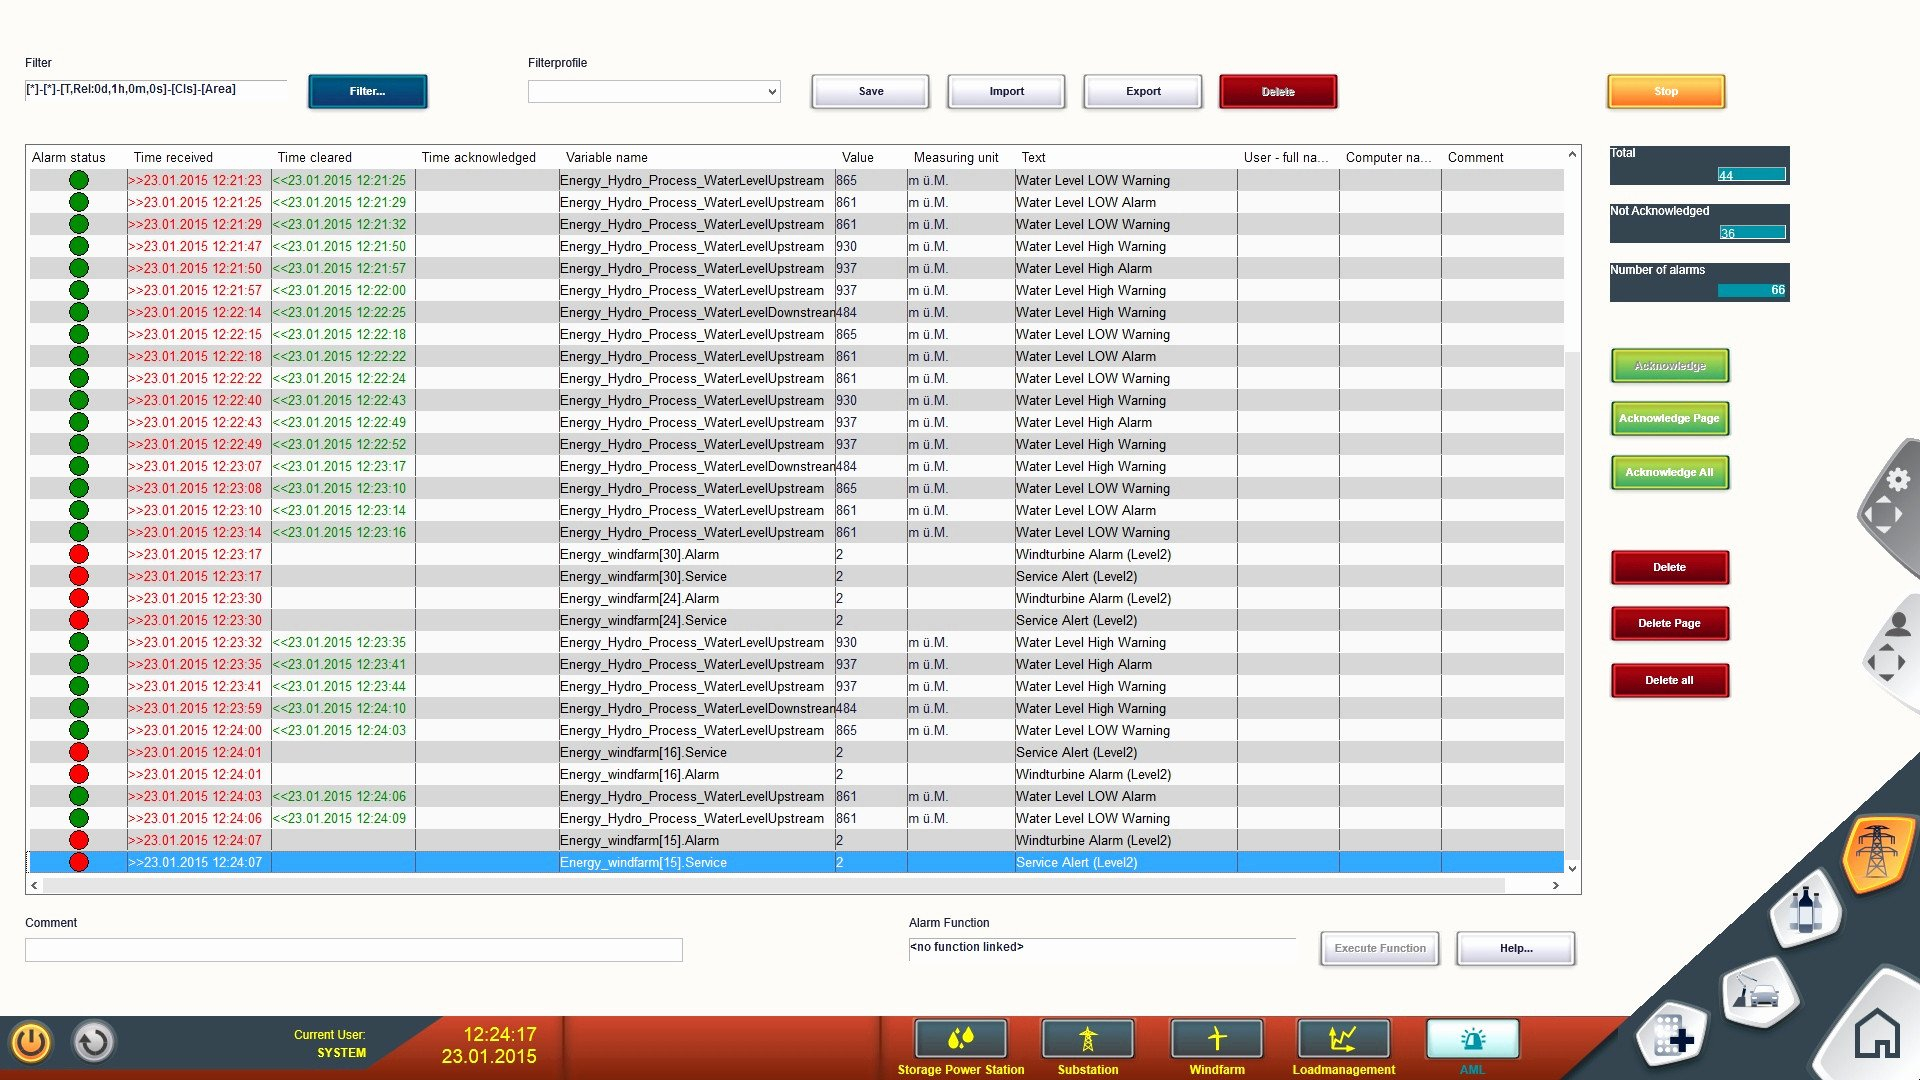 Can I Do Spreadsheets On An Ipad Of Best Spreadsheet App For Ipad ... As Well As Best Spreadsheet App For Ipad